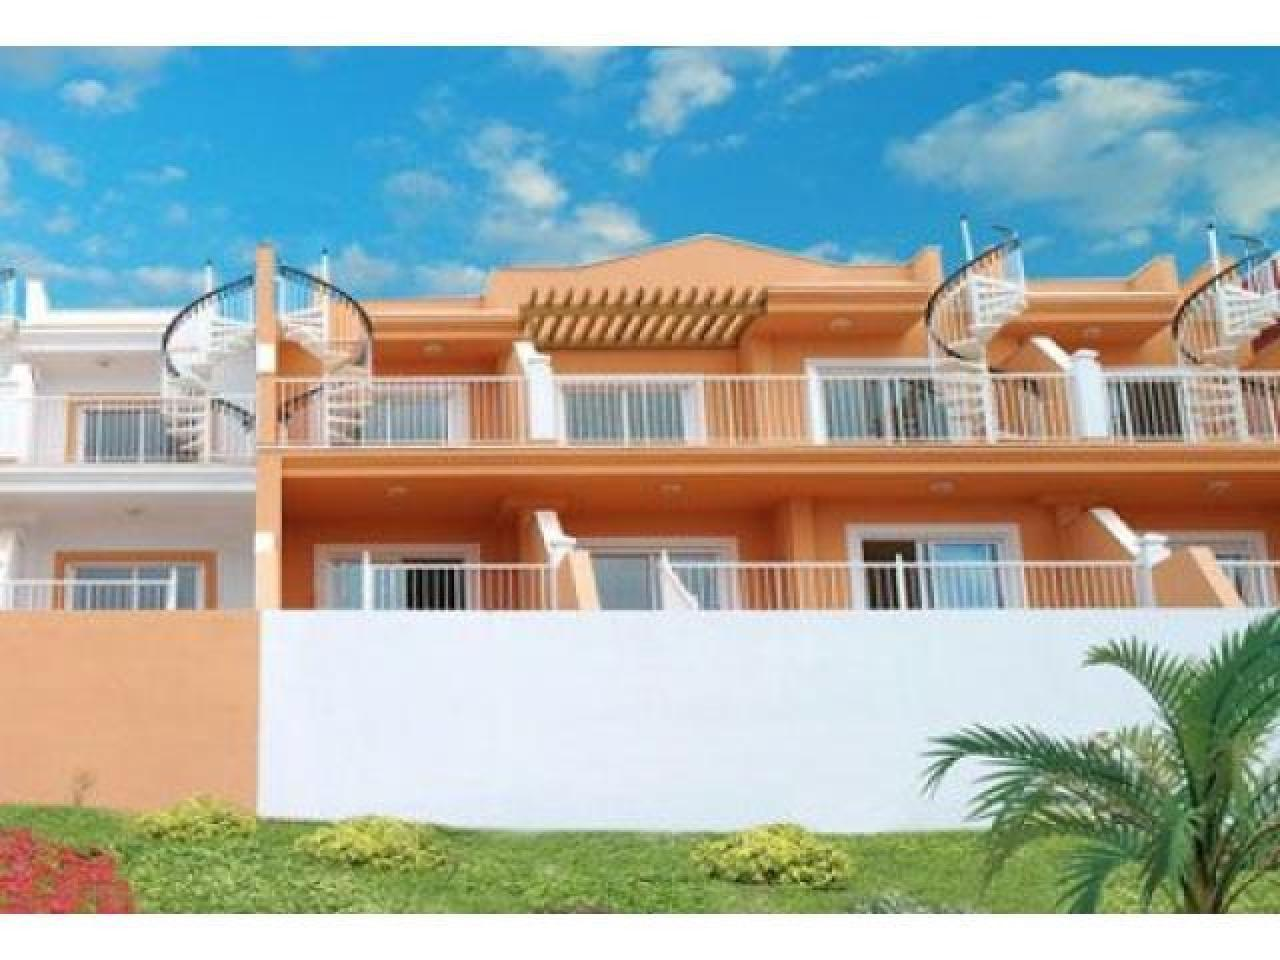 Real estate in Tenerife for sale » #43 - 2